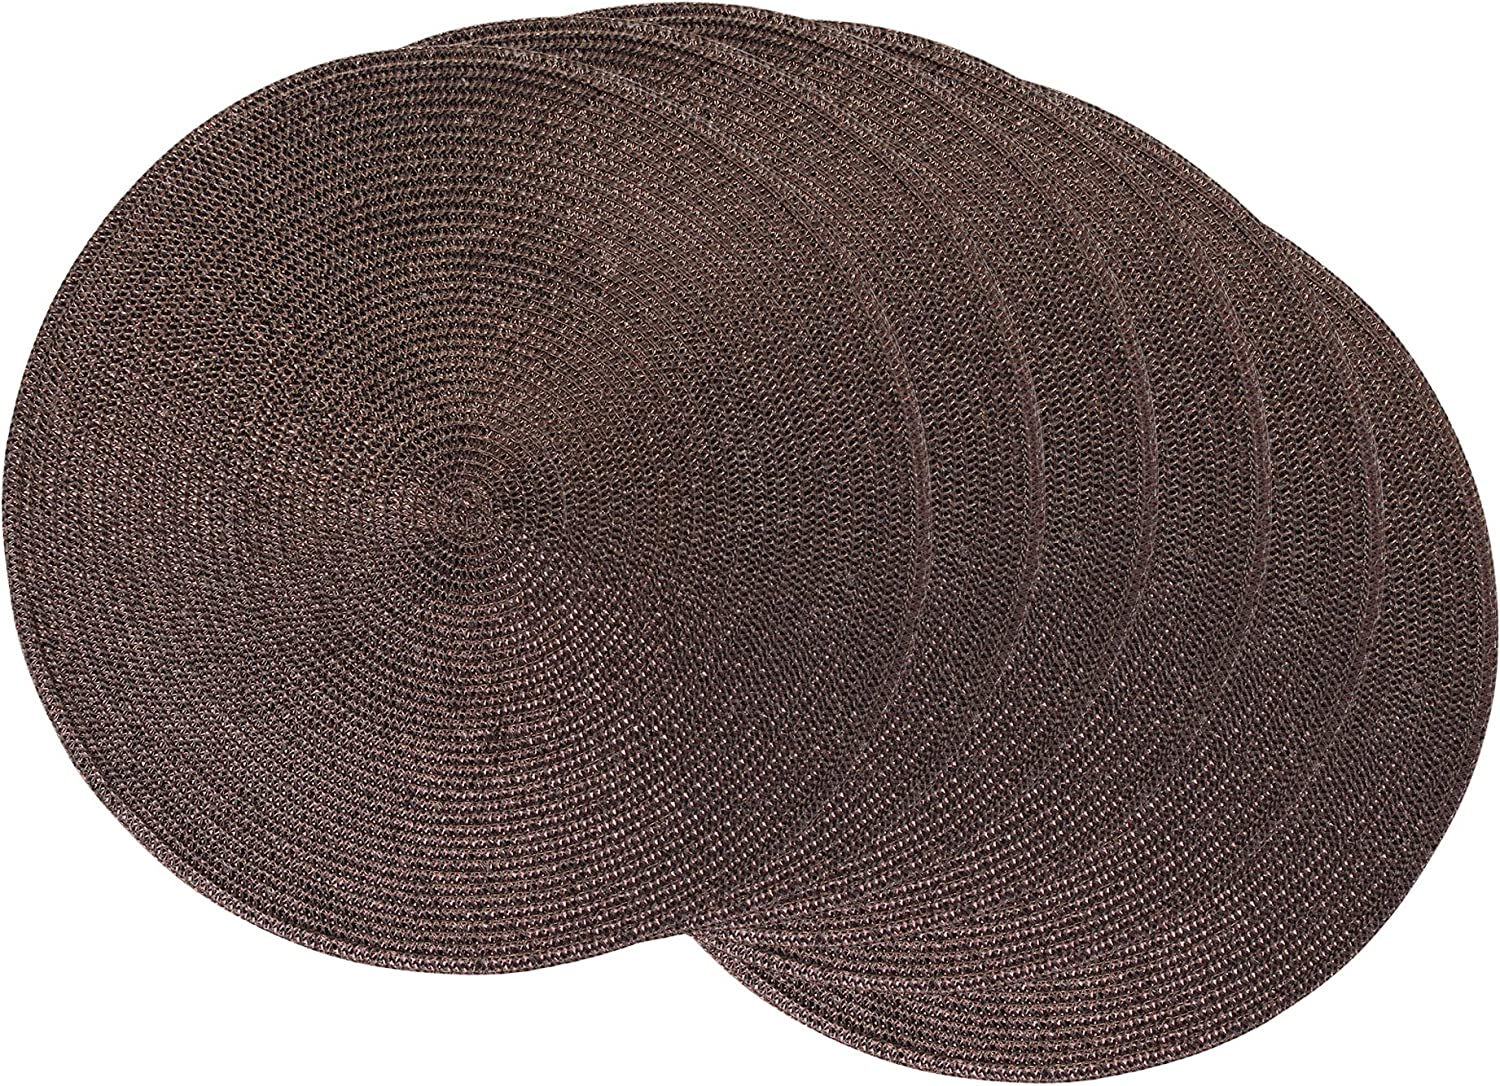 DII Round Braided & Woven, Indoor/Outdoor Placemat or Charger, Set of 6, Metallic Wine